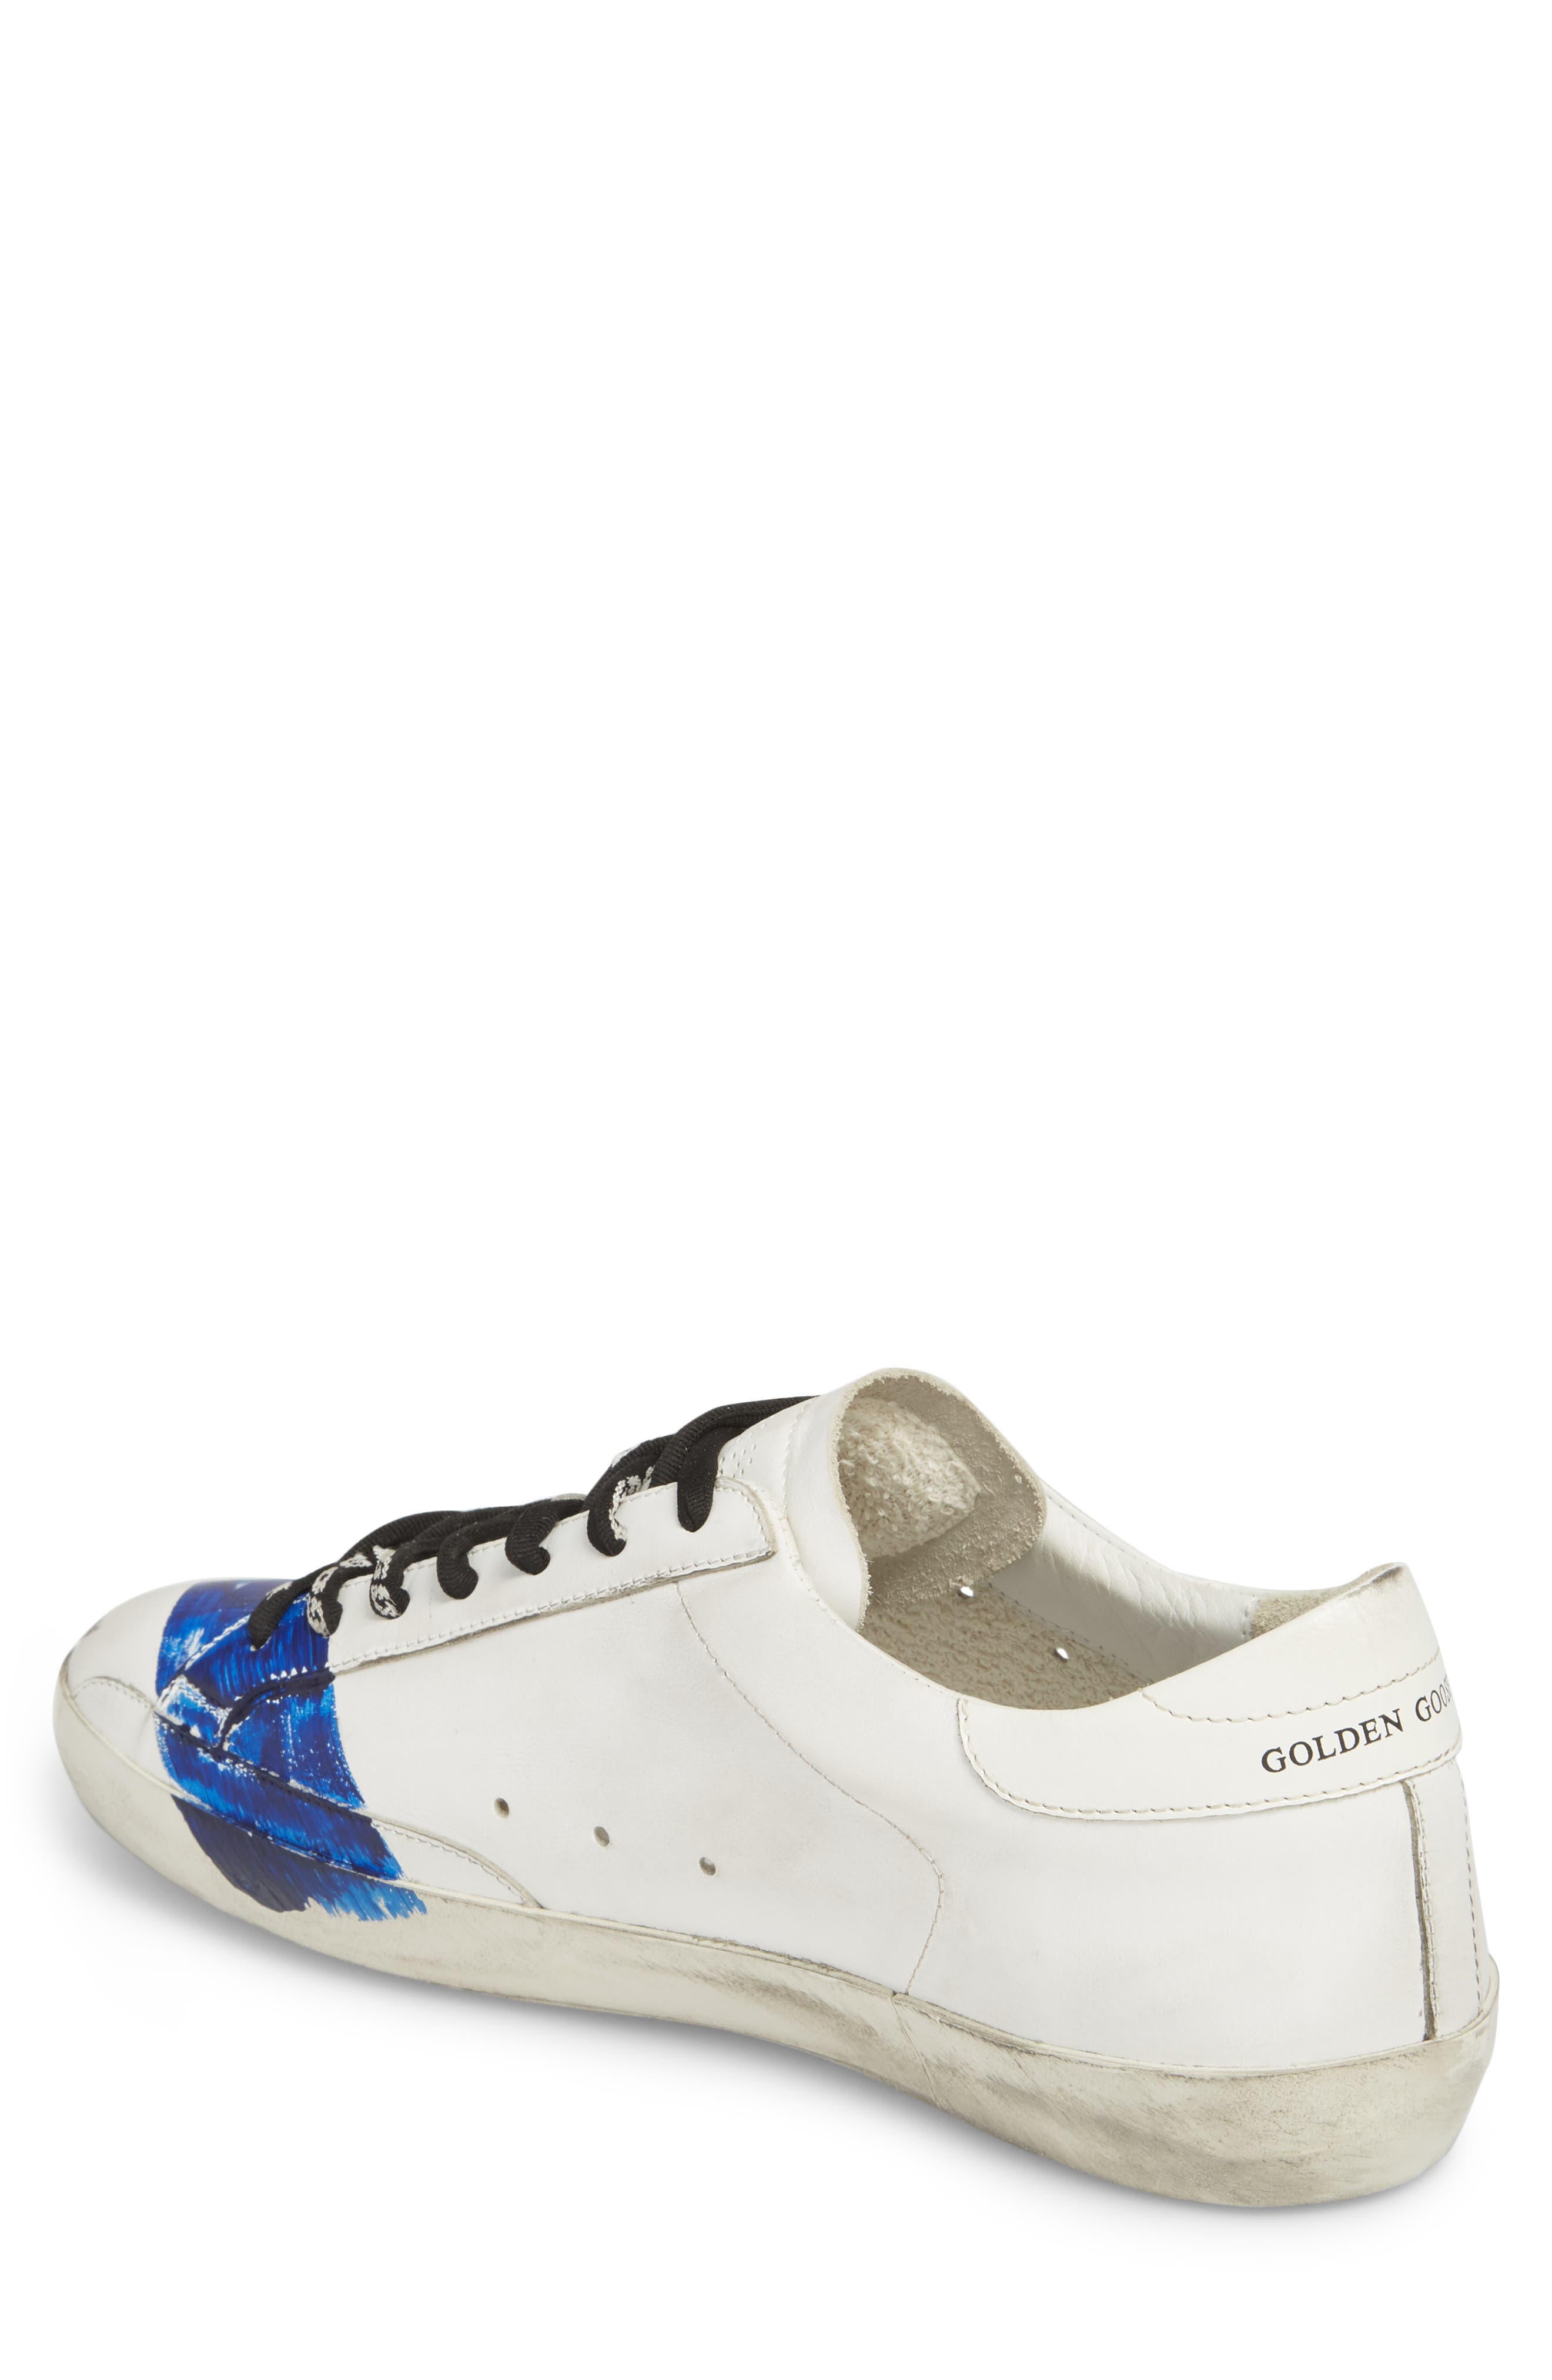 Superstar Distressed Sneaker,                             Alternate thumbnail 2, color,                             WHITE-BLUE STRIPE